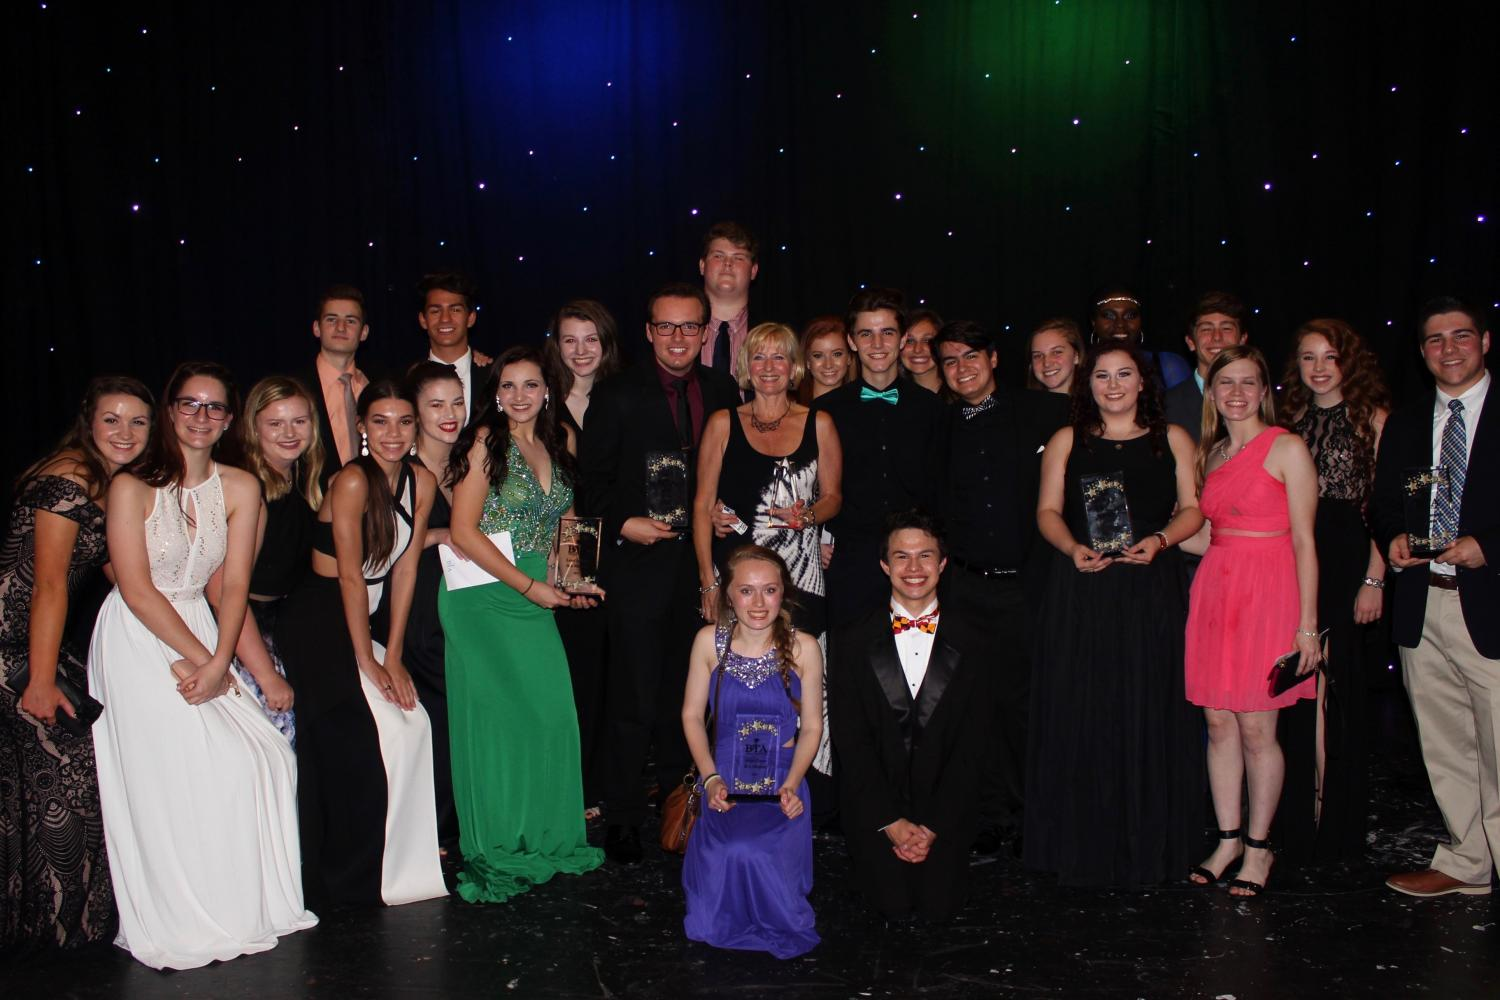 The+cast+and+crew+of+%22Shrek+the+Musical%22+pose+with+their+six+trophies+at+the+Baltimore+Theatre+Awards+on+Sunday%2C+April+30.+The+Theatre+Department+received+several+awards+including+Best+Musical%2C+Best+Ensemble%2C+Best+Student+Orchestra%2C+and+Best+Stage+Crew.+Also%2C+sophomore+Rachel+Miller+won+Best+Leading+Actress+and+senior+Zachary+Miller+won+Best+Supporting+Actor.%0A